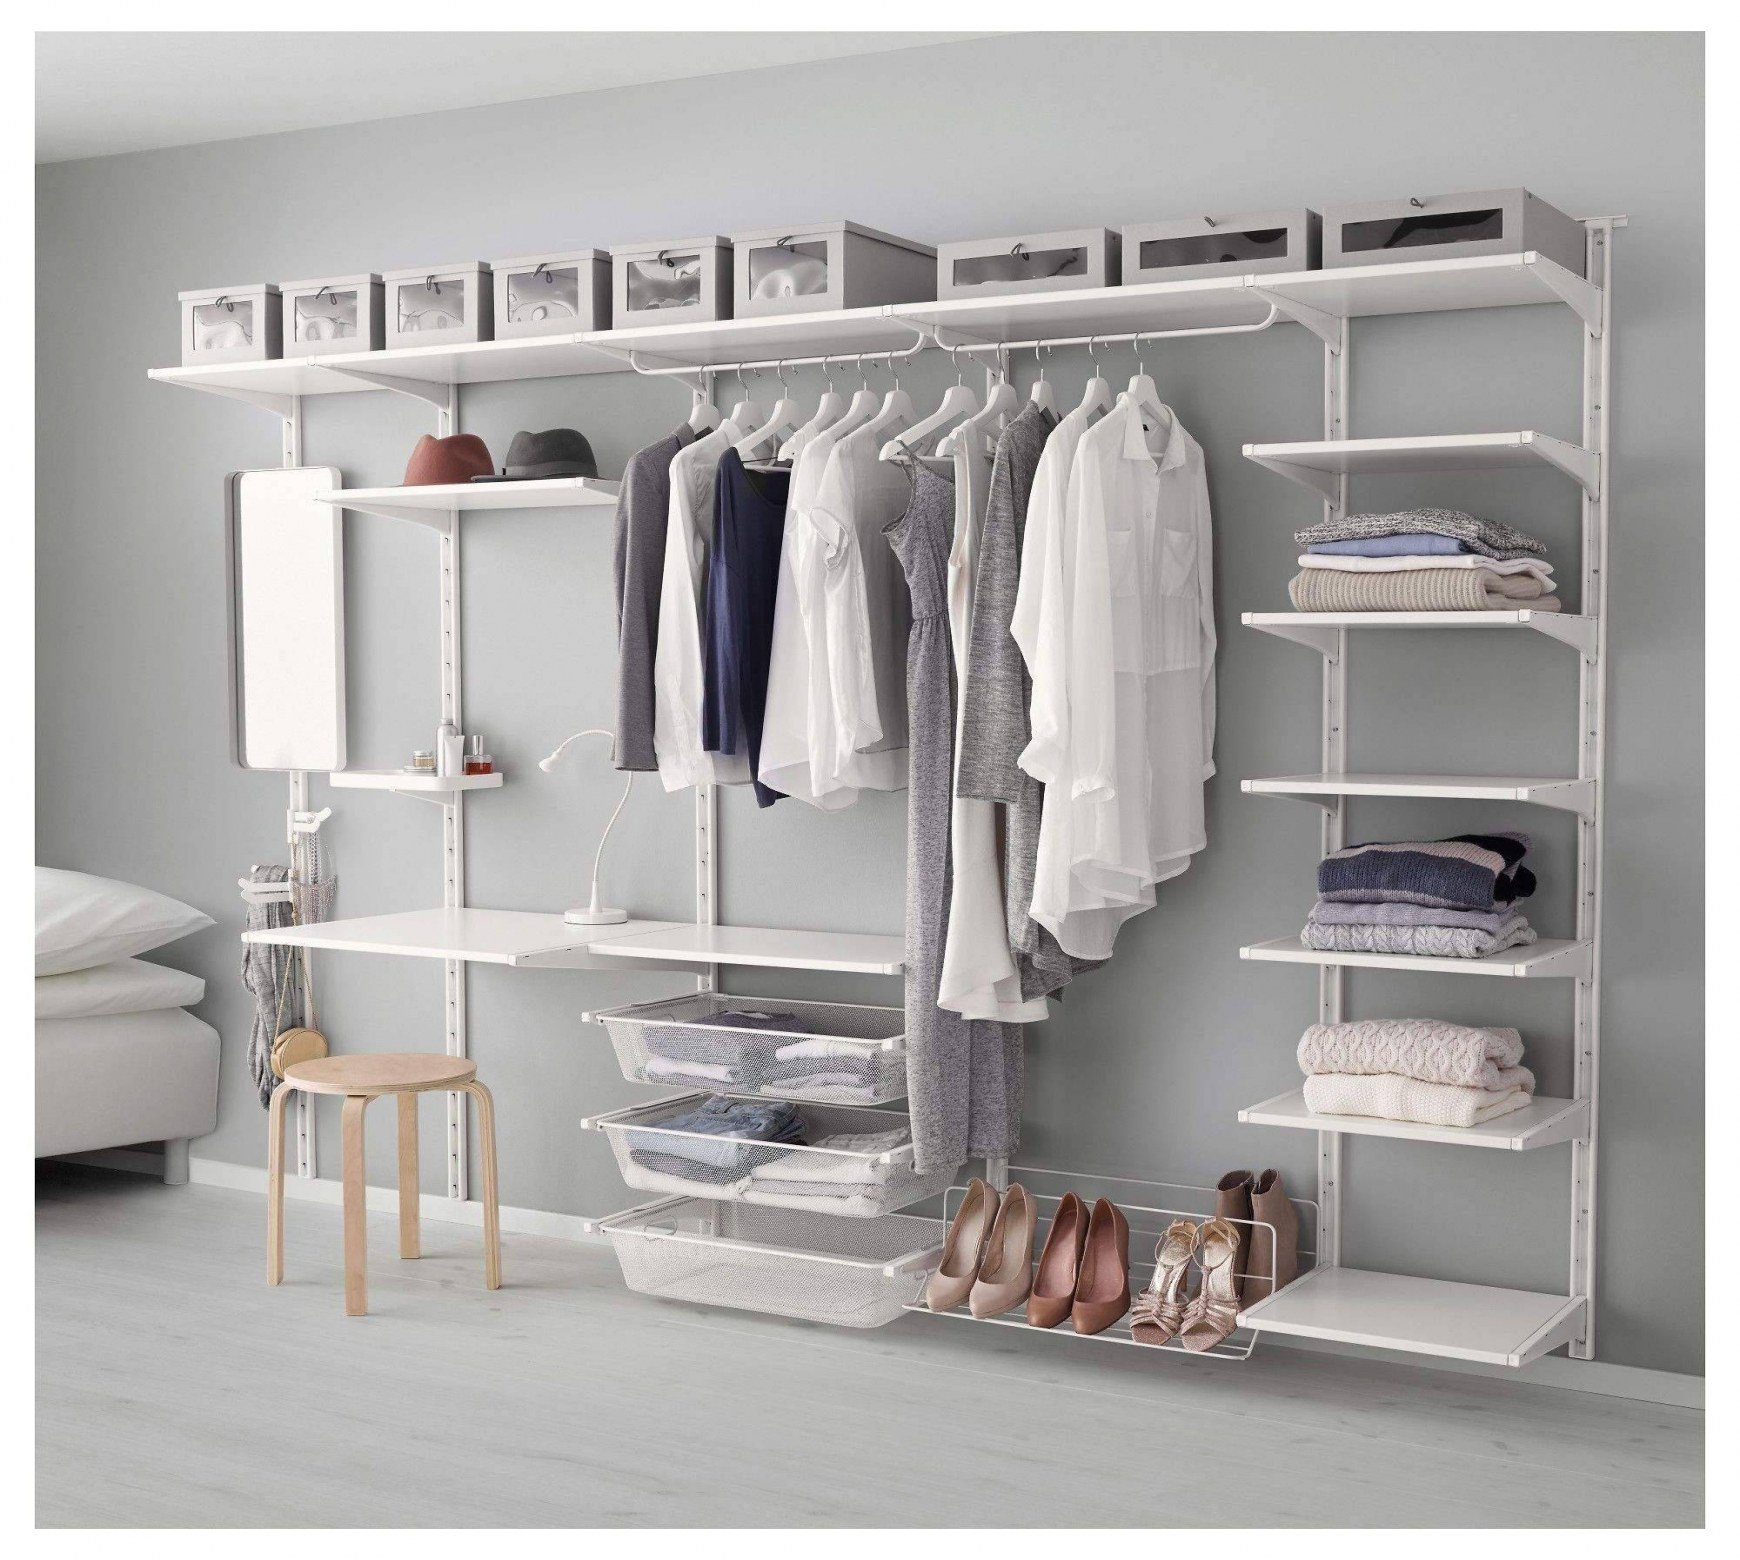 Clothing Rack for Bedroom Luxury Shoe Storage Ideas Clothes Storage Ideas for Small Bedroom